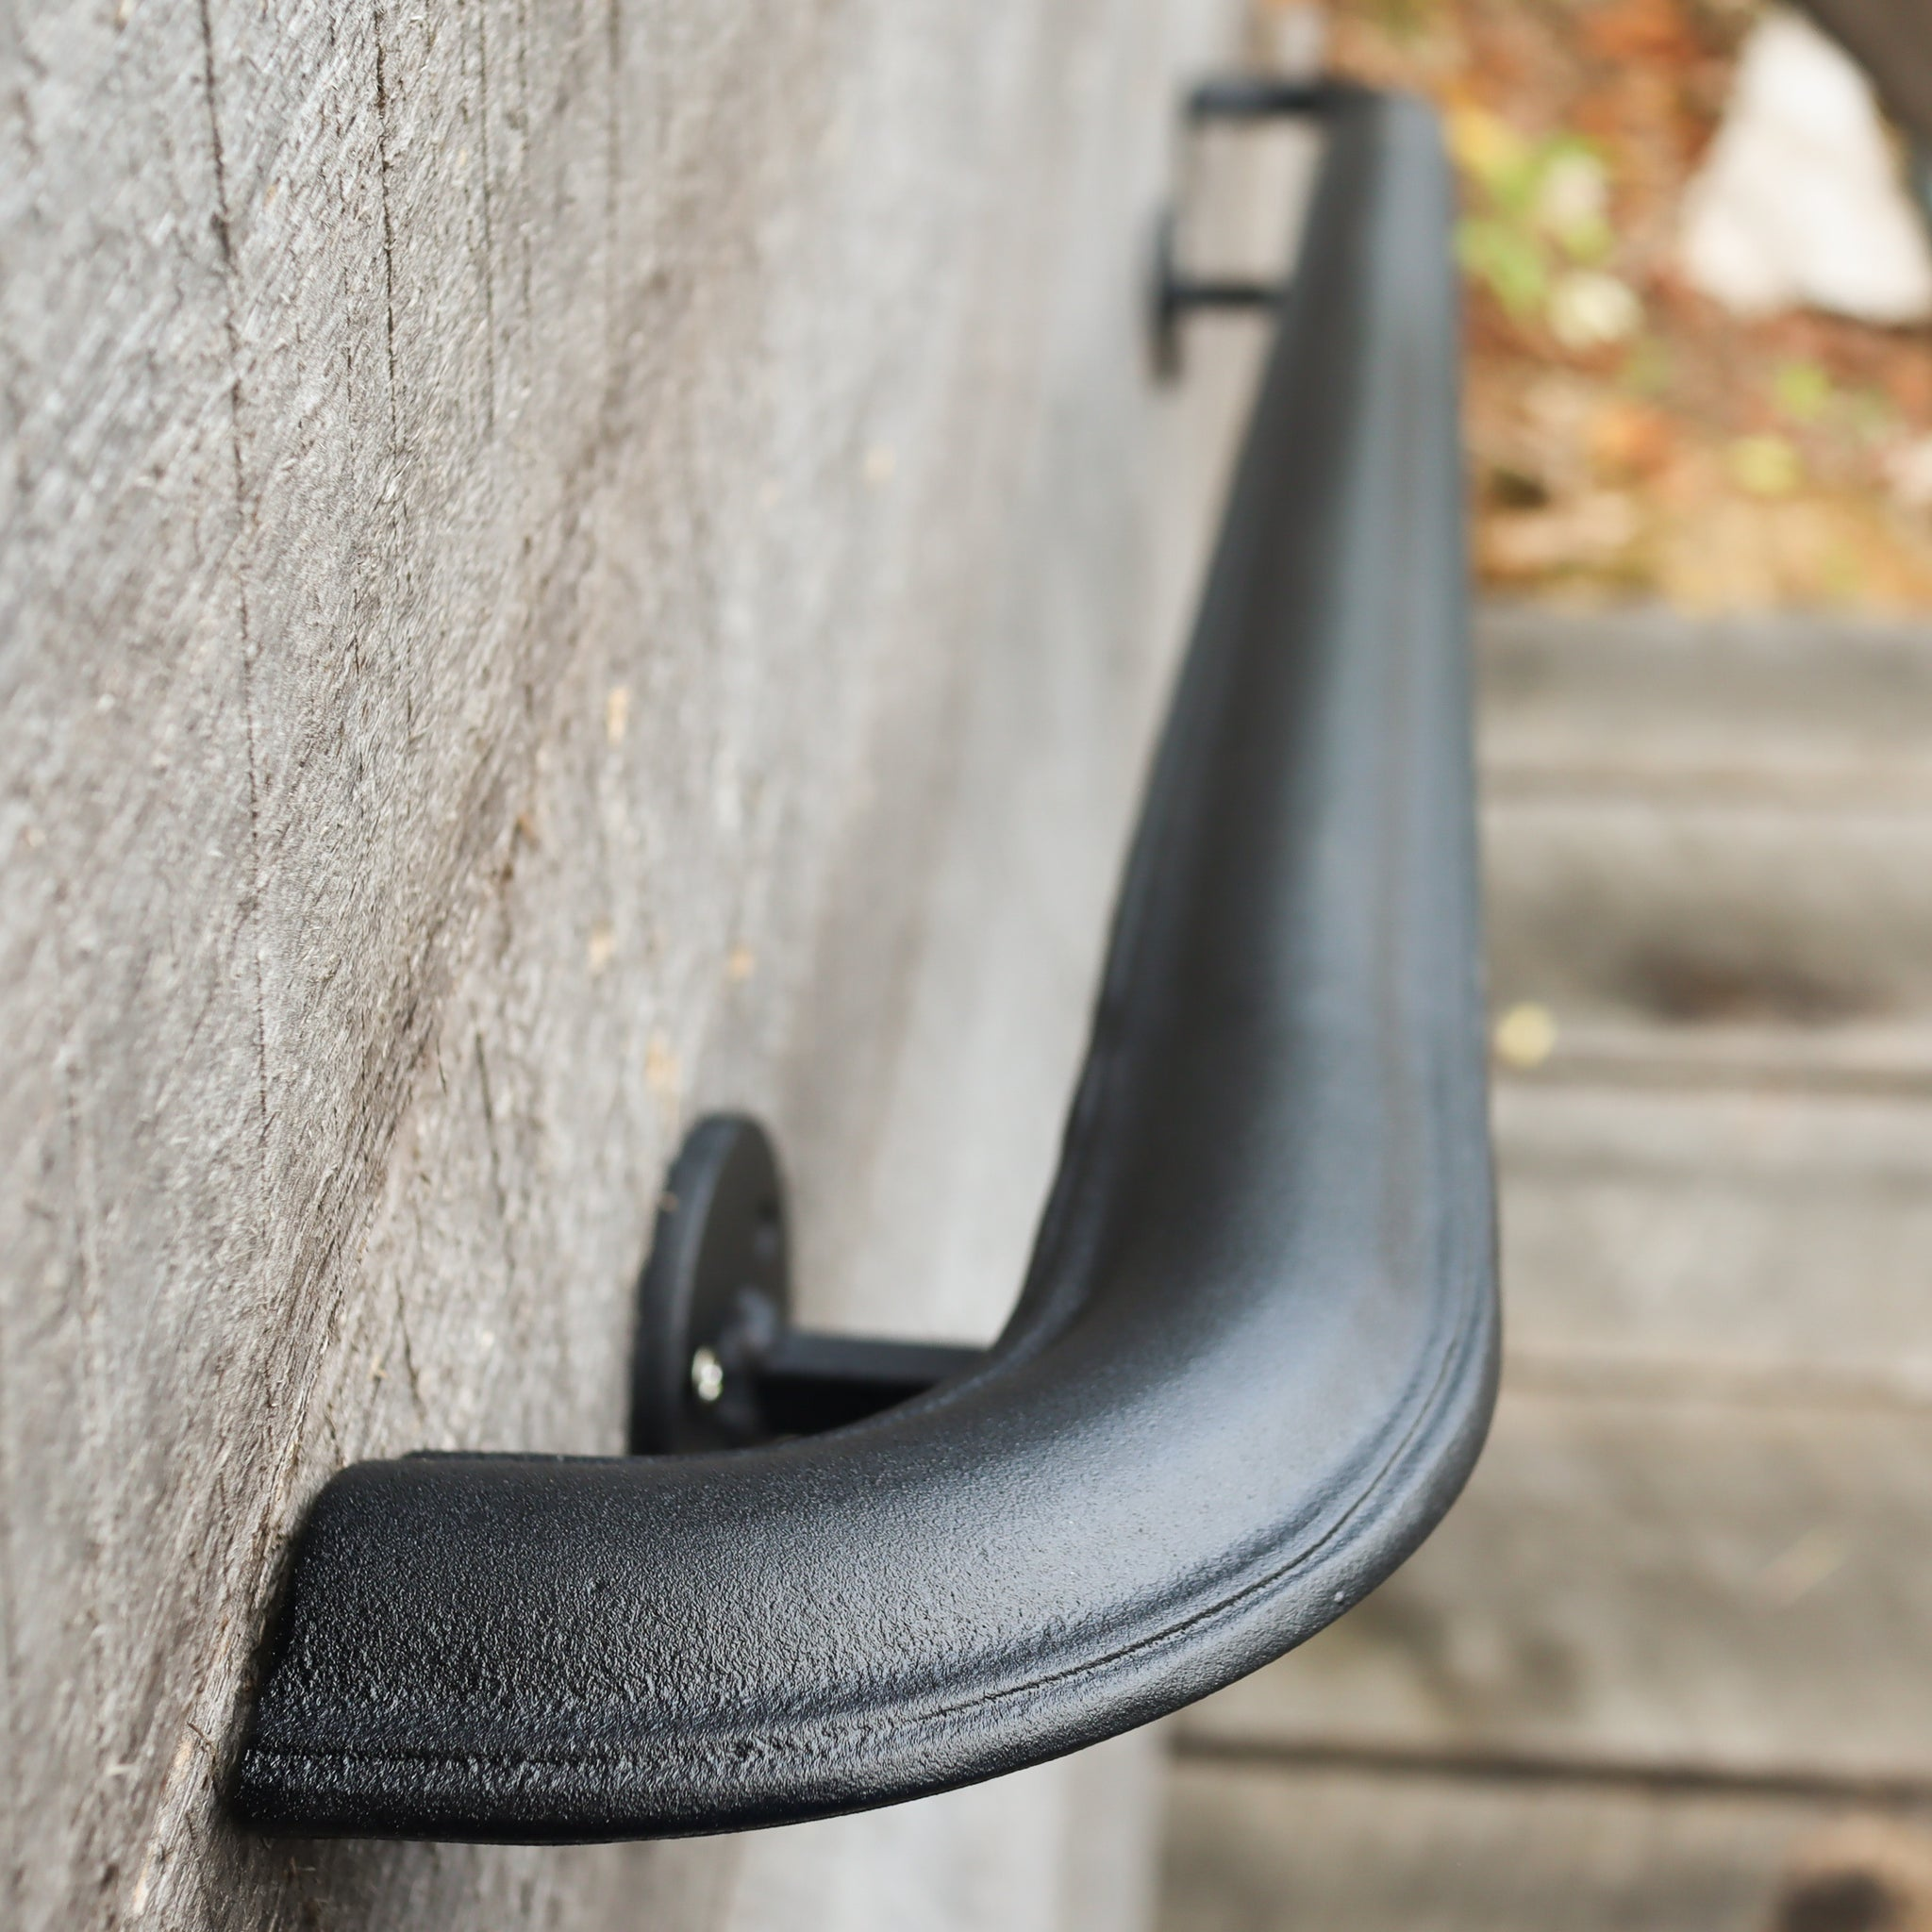 Metal Handrail with Curved Returns - ADA Compliant Return Wall Mount Grab Rail - Victorian Stair Rail